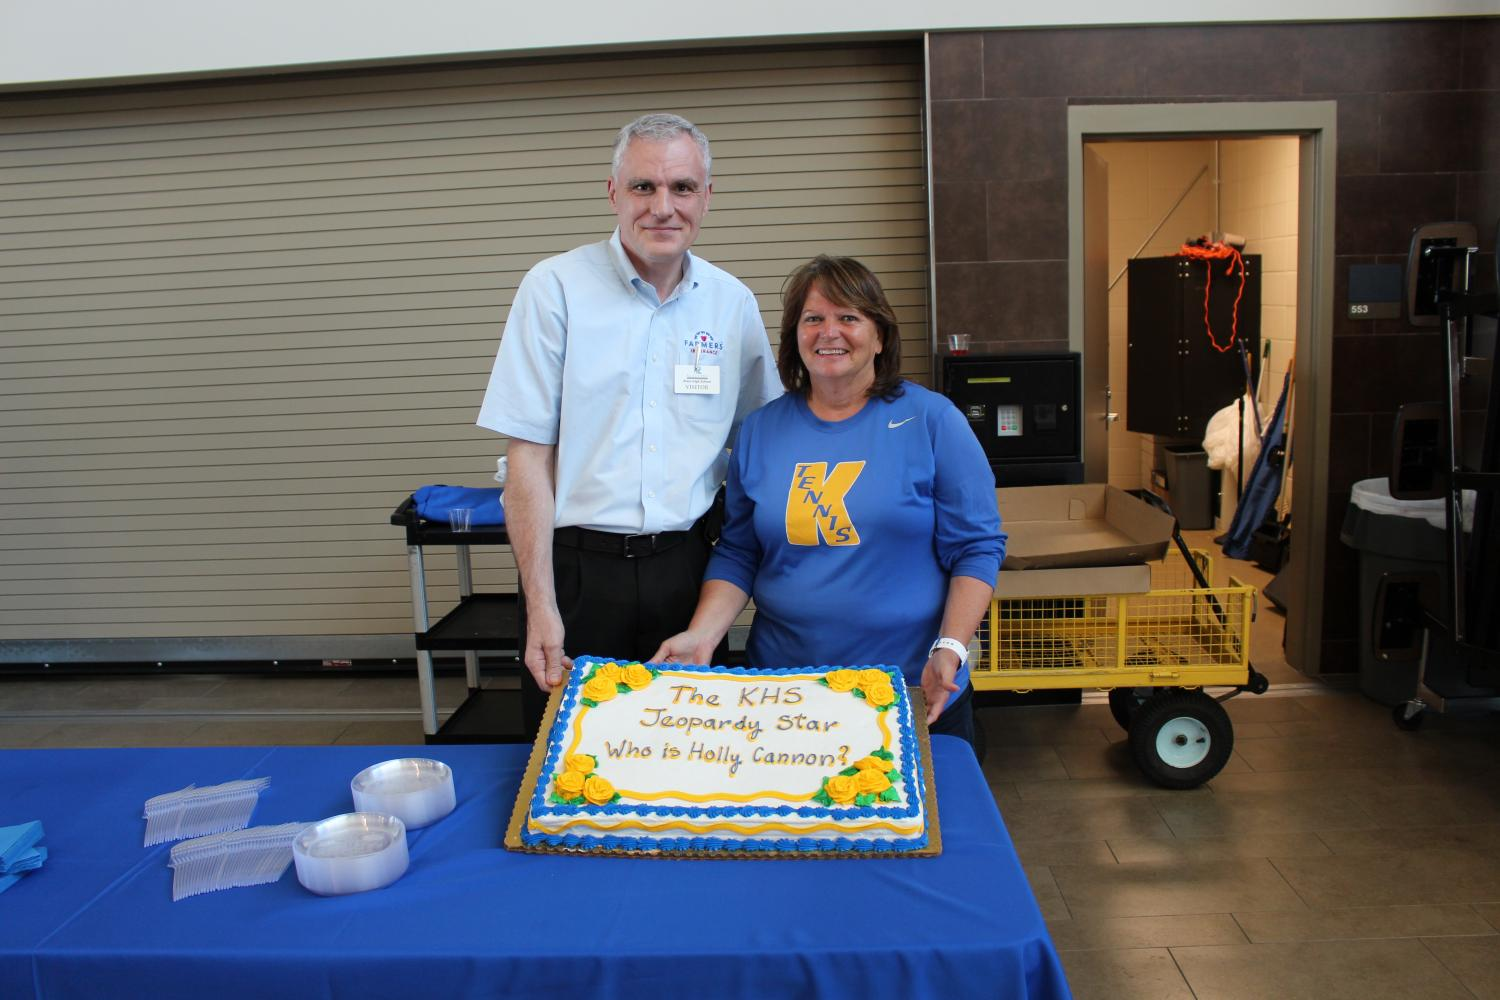 Holly Cannon receives a cake from Farmer's Insurance during her watch party in May.